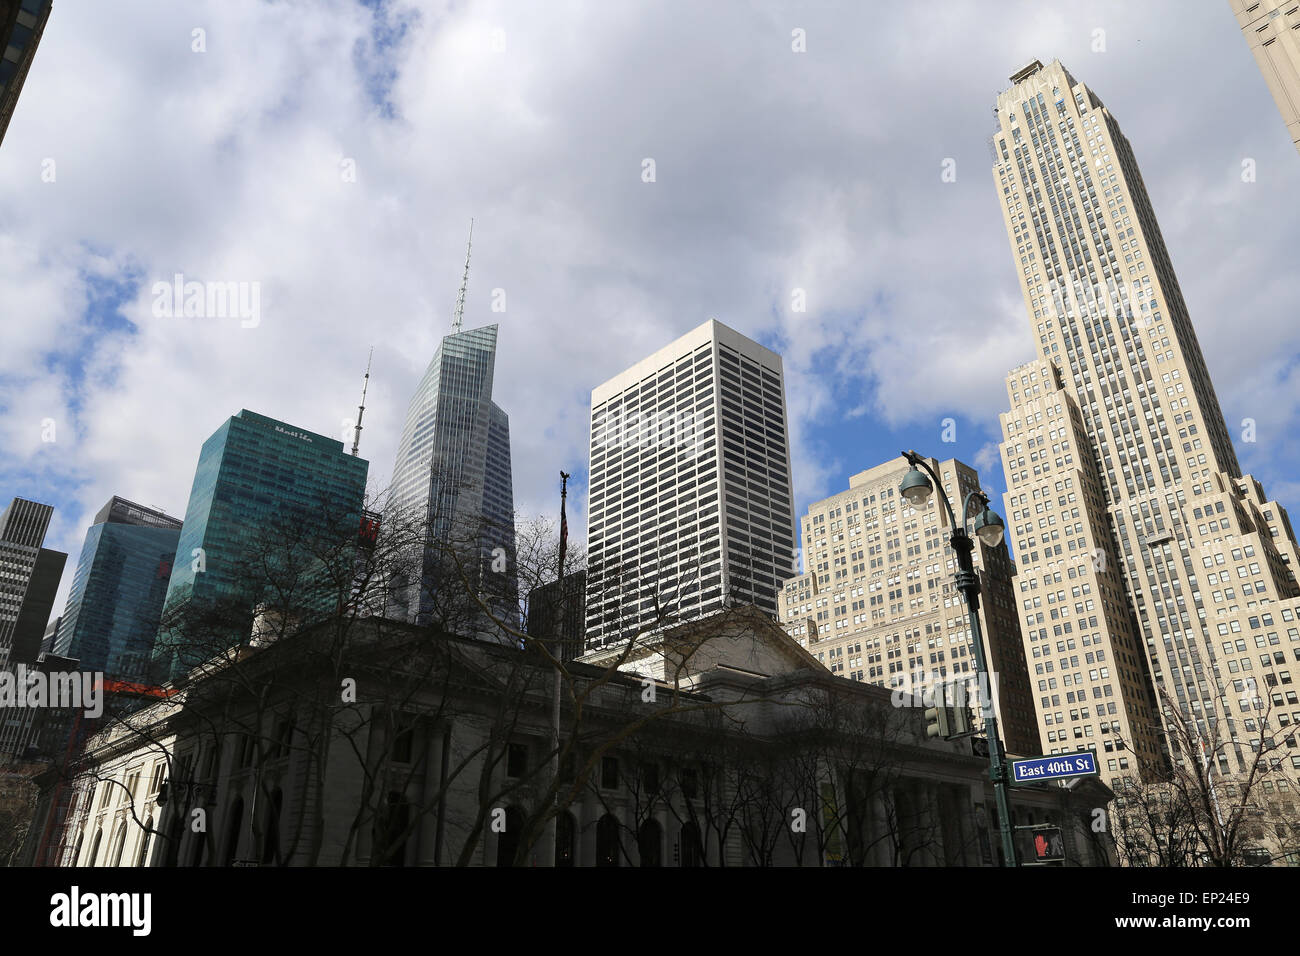 United States. New York City. Lower Manhattan. Skyscraper. - Stock Image